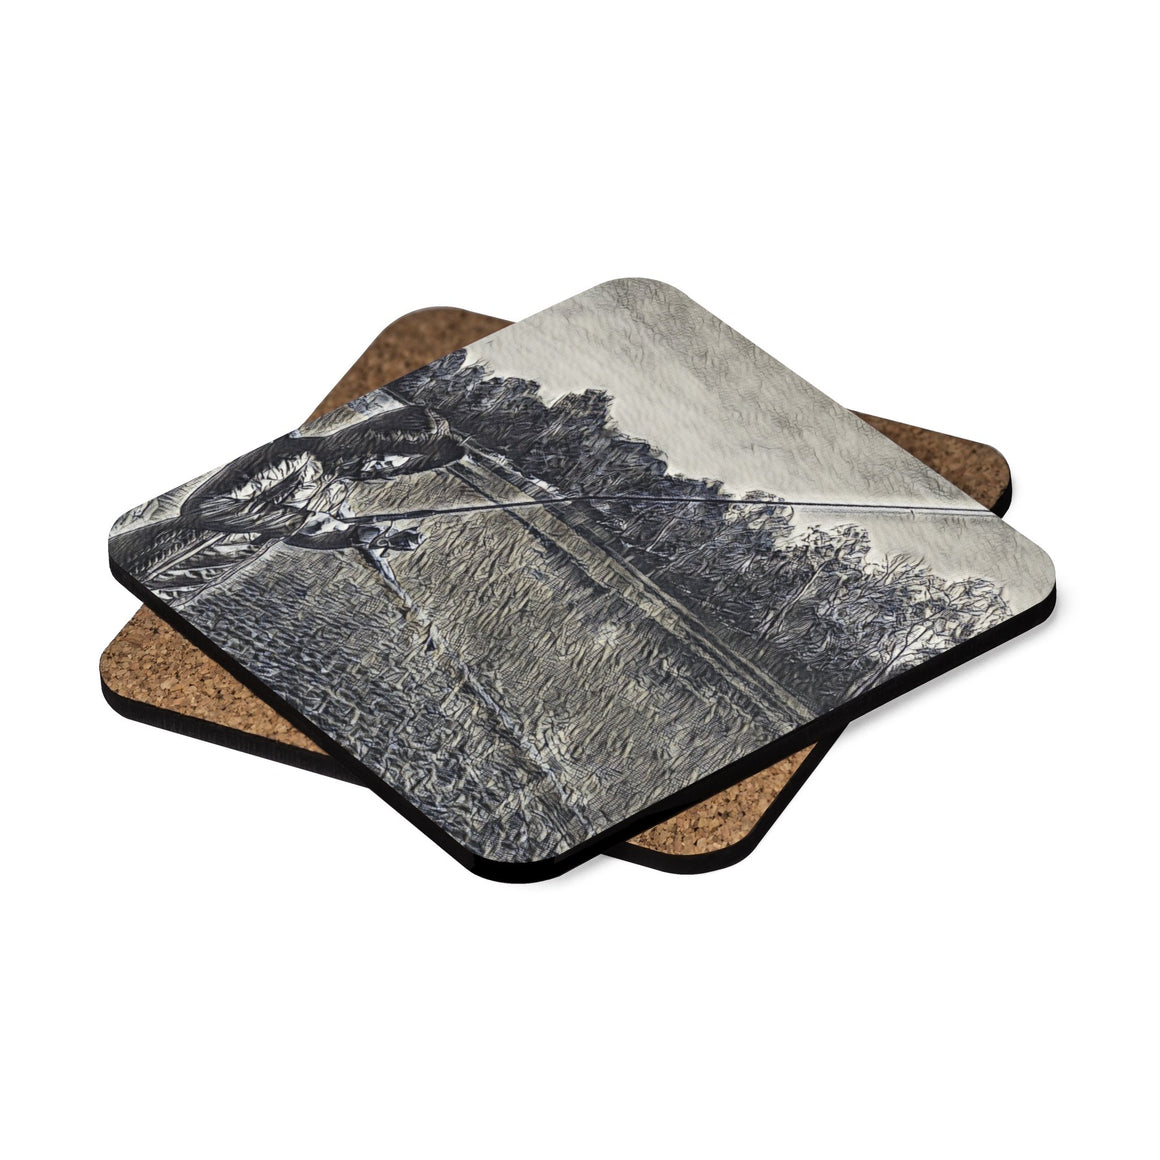 Levi Thang Fishing Design 14 Square Hardboard Coaster Set - 4pcs - I Am A Dreamer